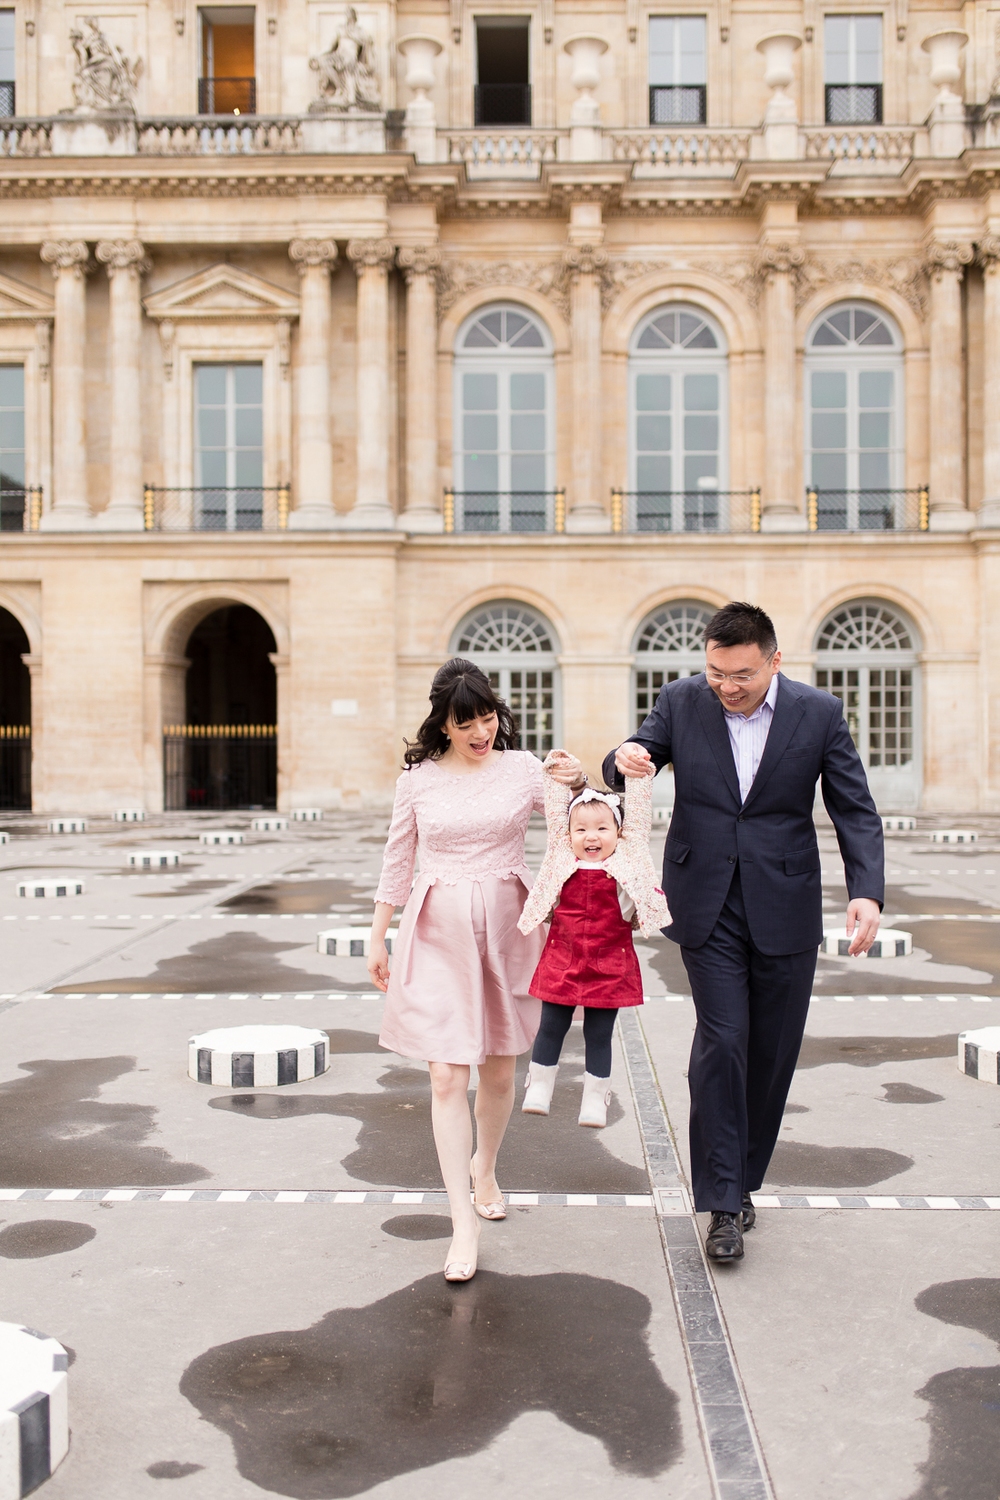 spring-fall-family-maternity-paris-palais-royal-louvre-photo-session-inspiration-1